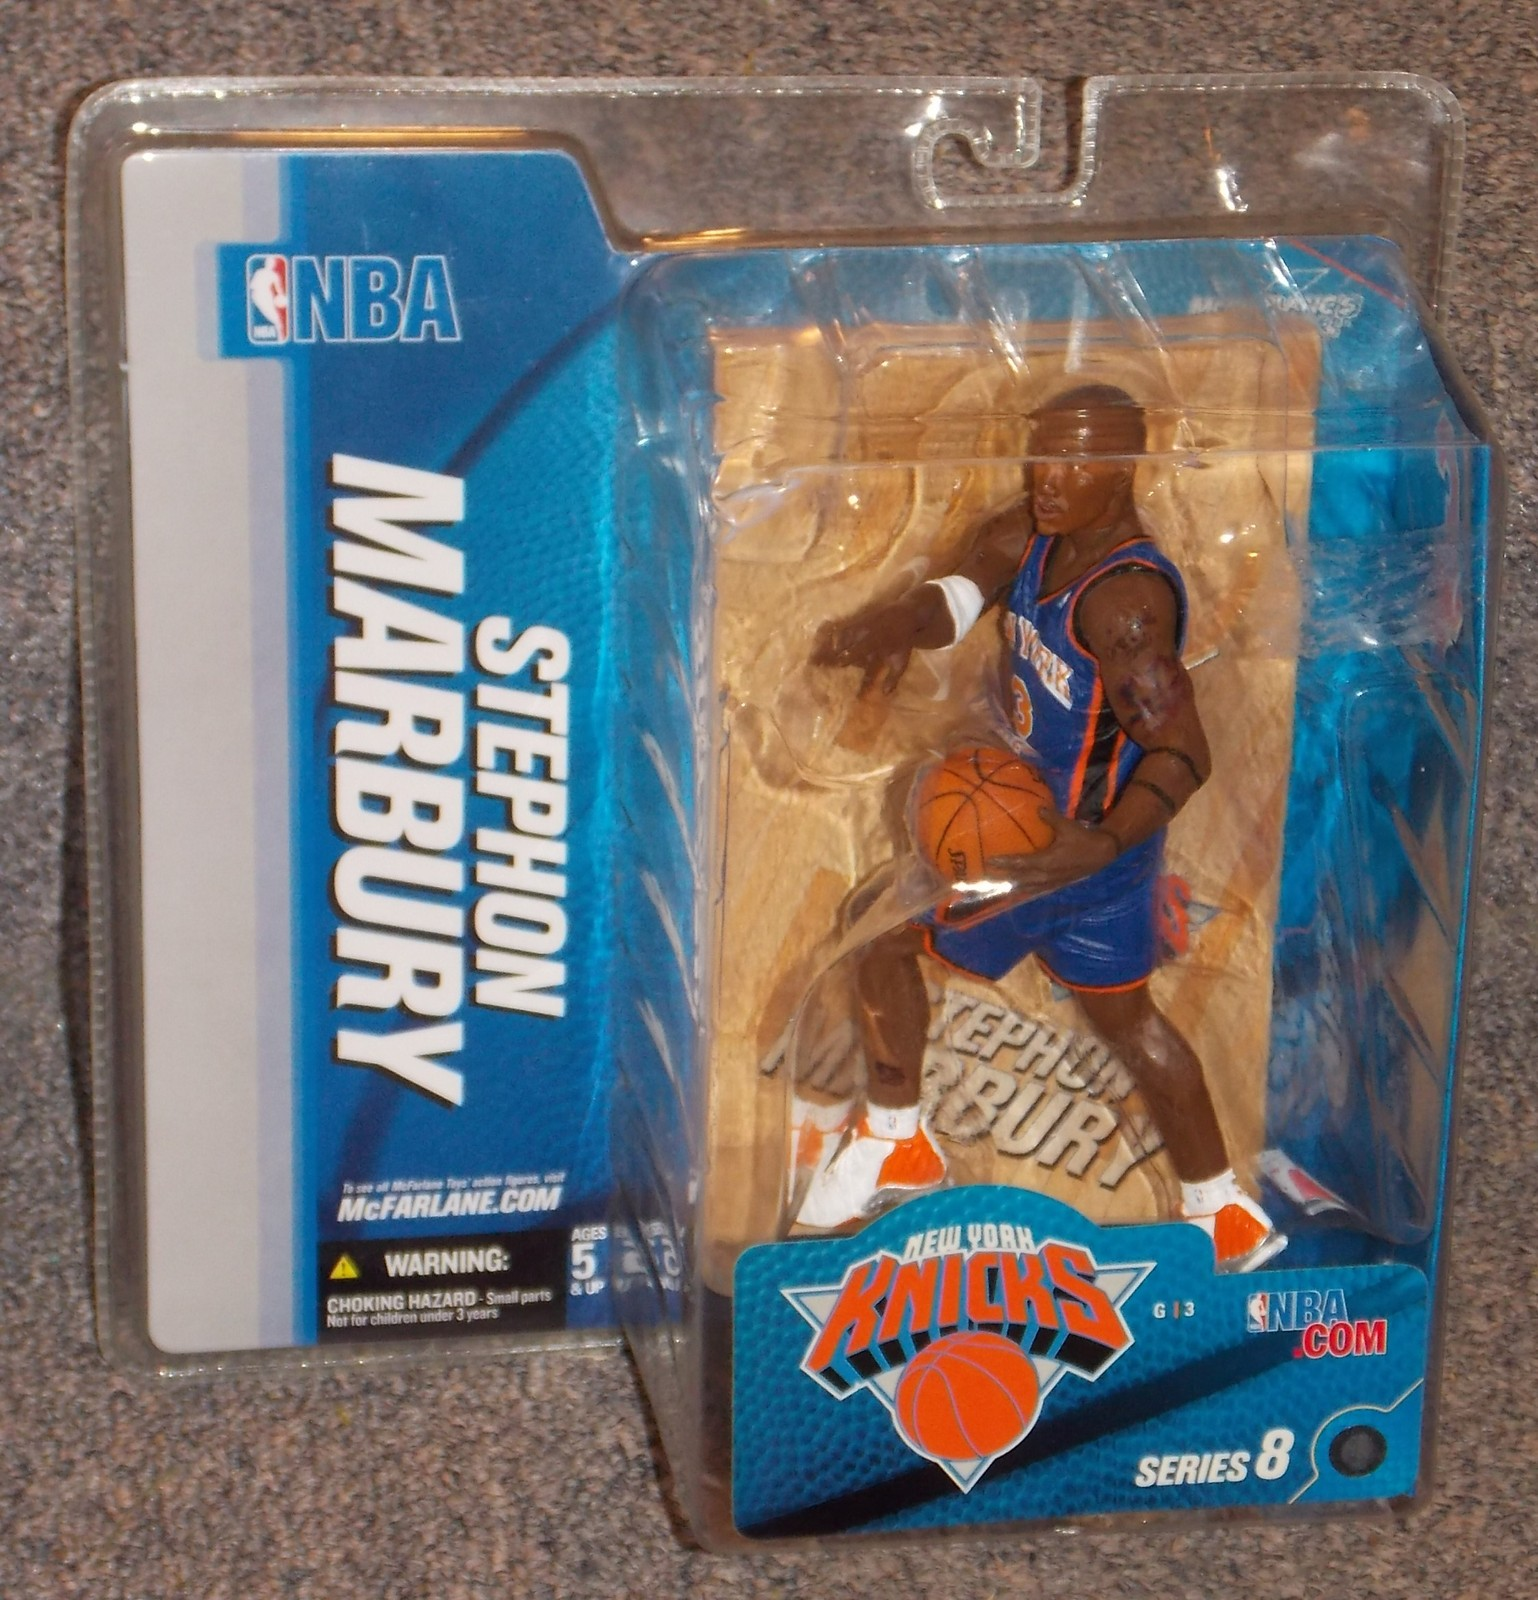 Primary image for 2005 McFarlane Toys New York Knicks Stephon Marbury Action Figure New In package